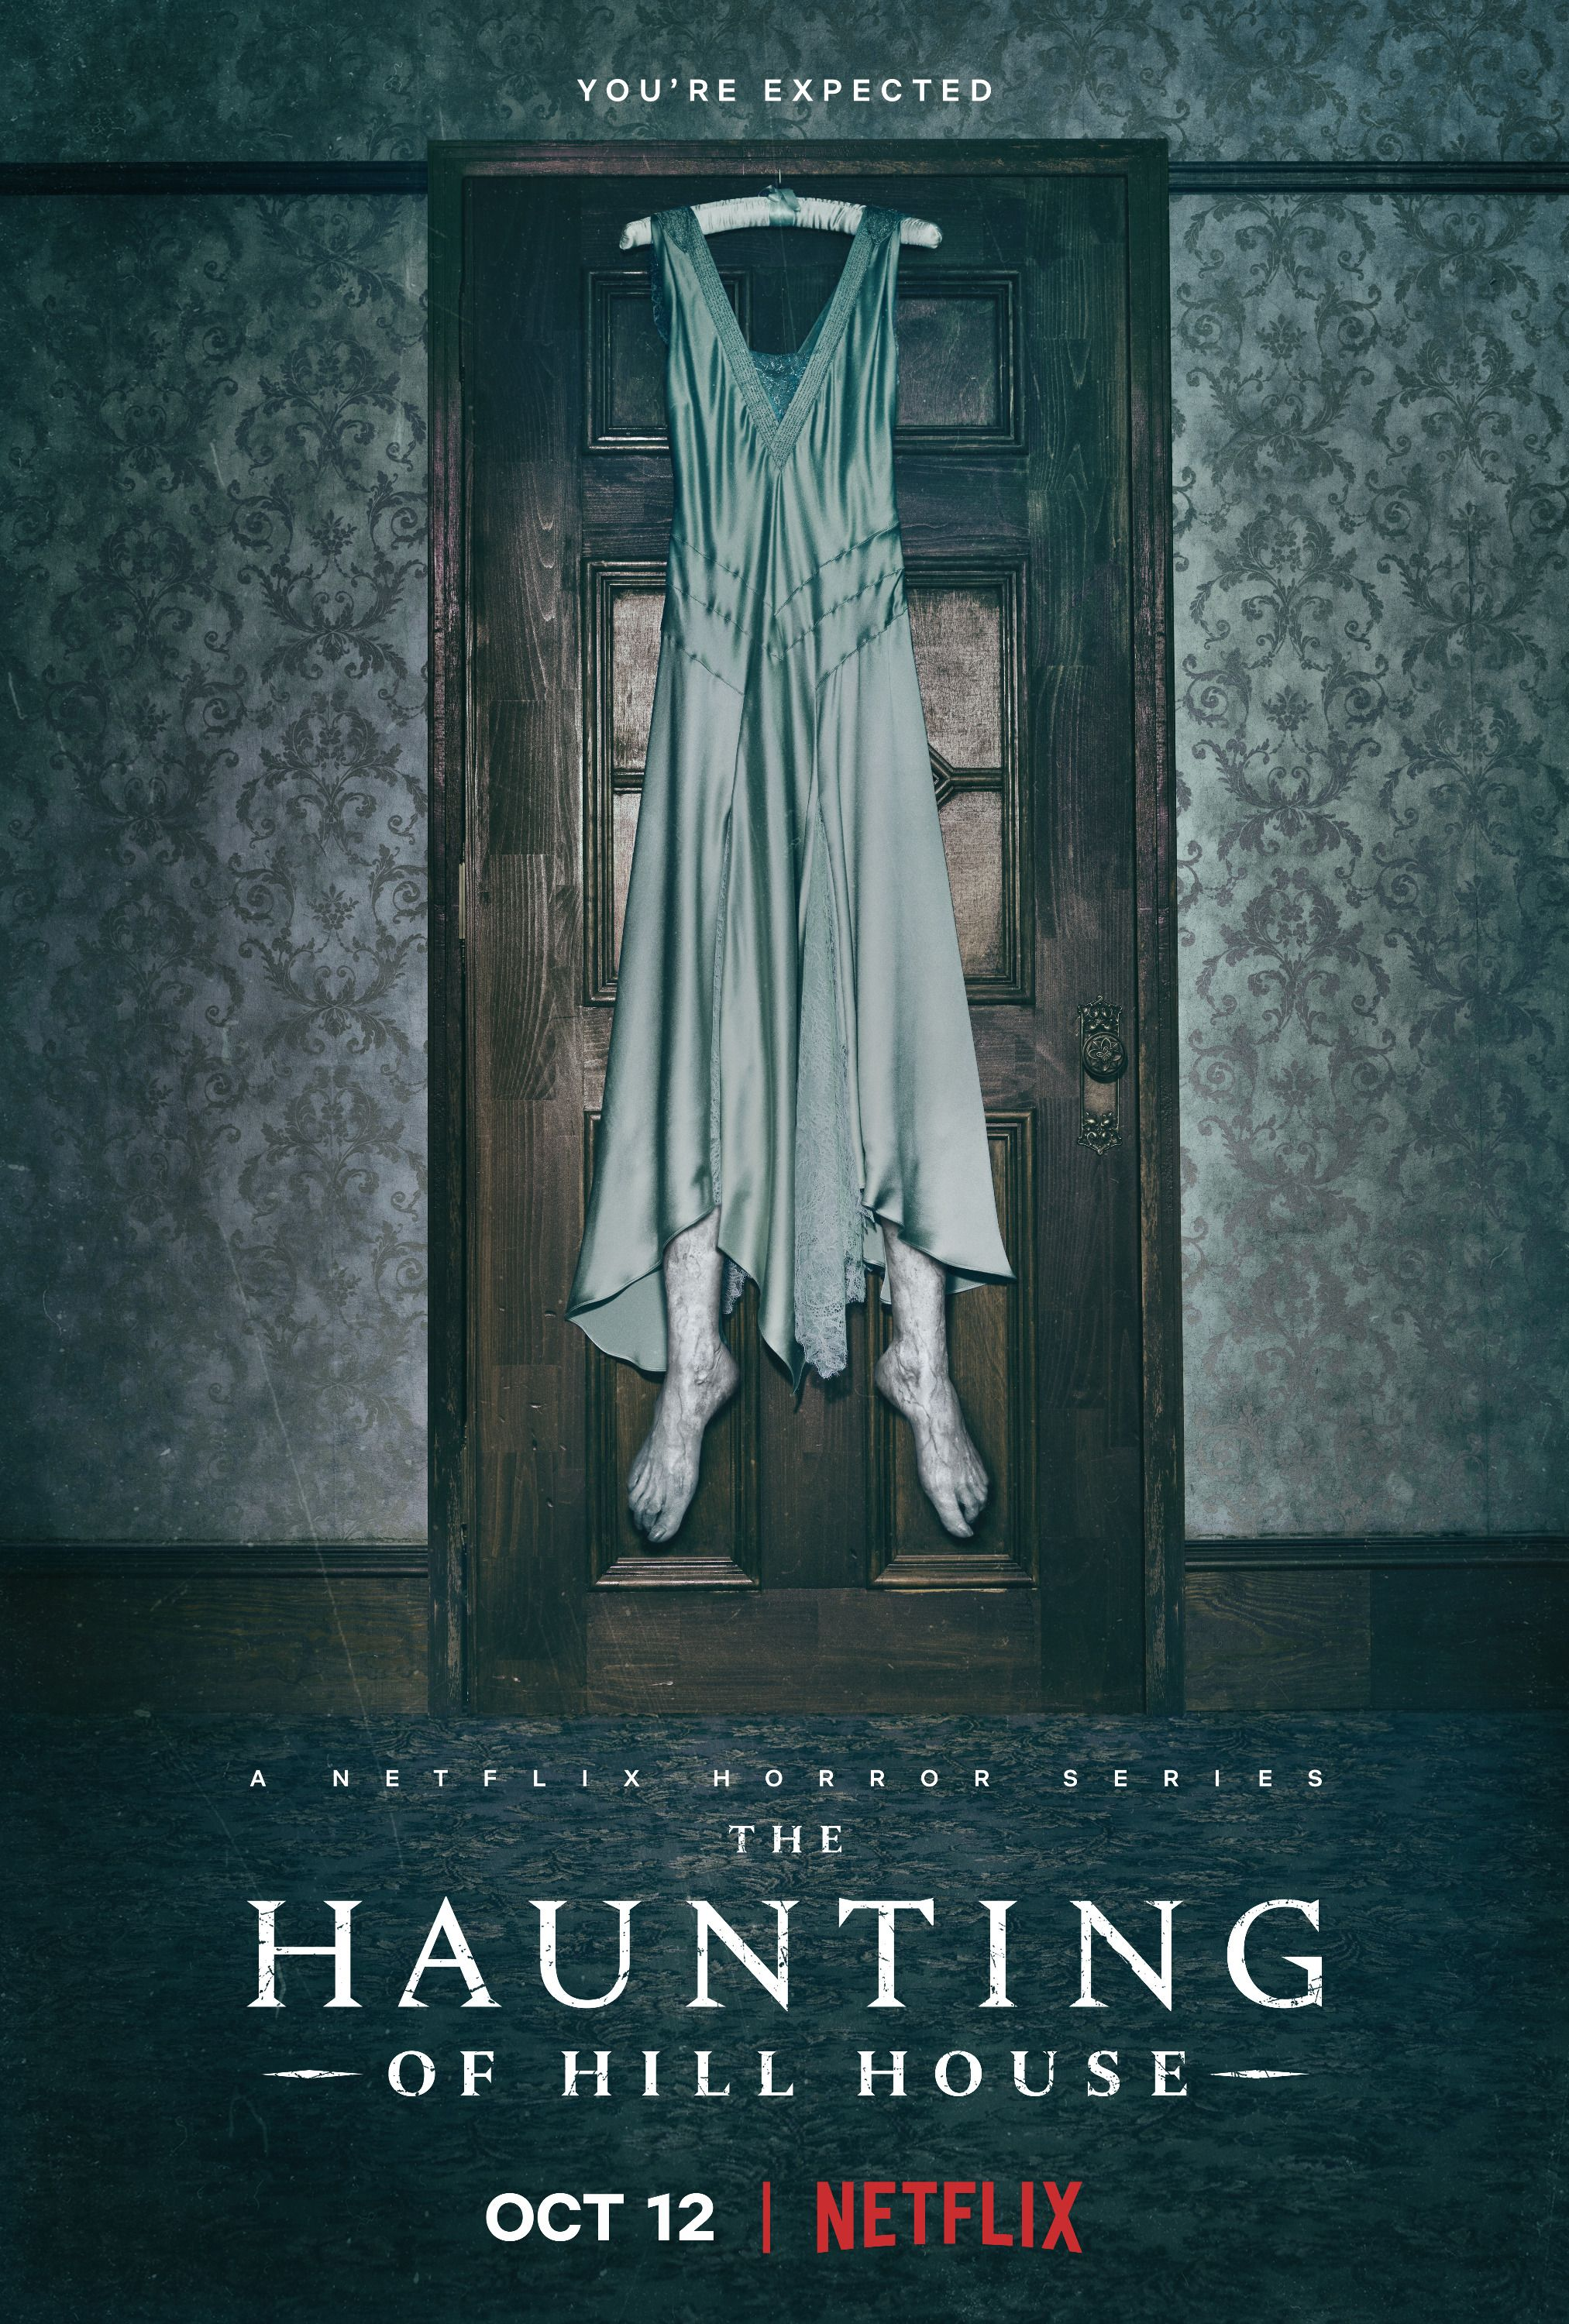 The Haunting Of Hill House Netflix Horror Series House On A Hill Netflix Horror